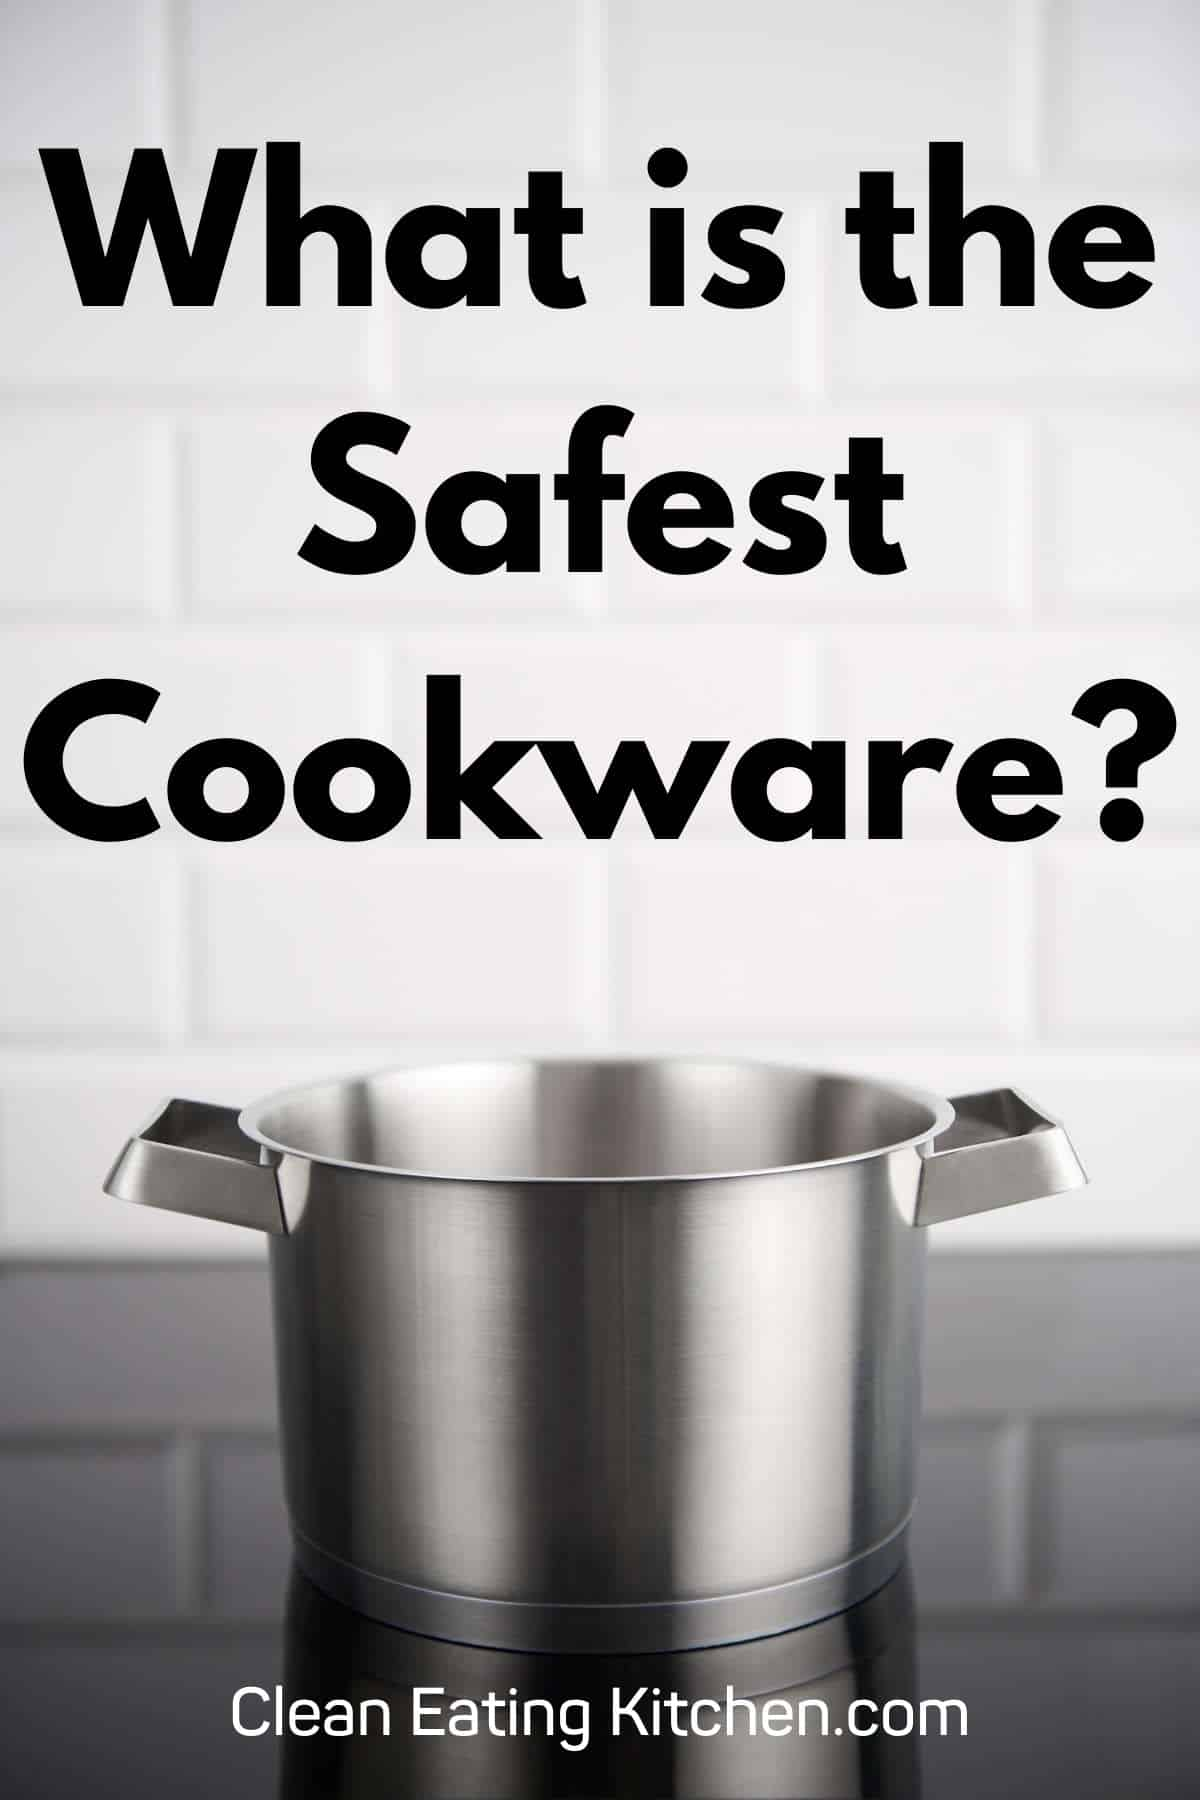 infographic with text that says what is the safest cookware?